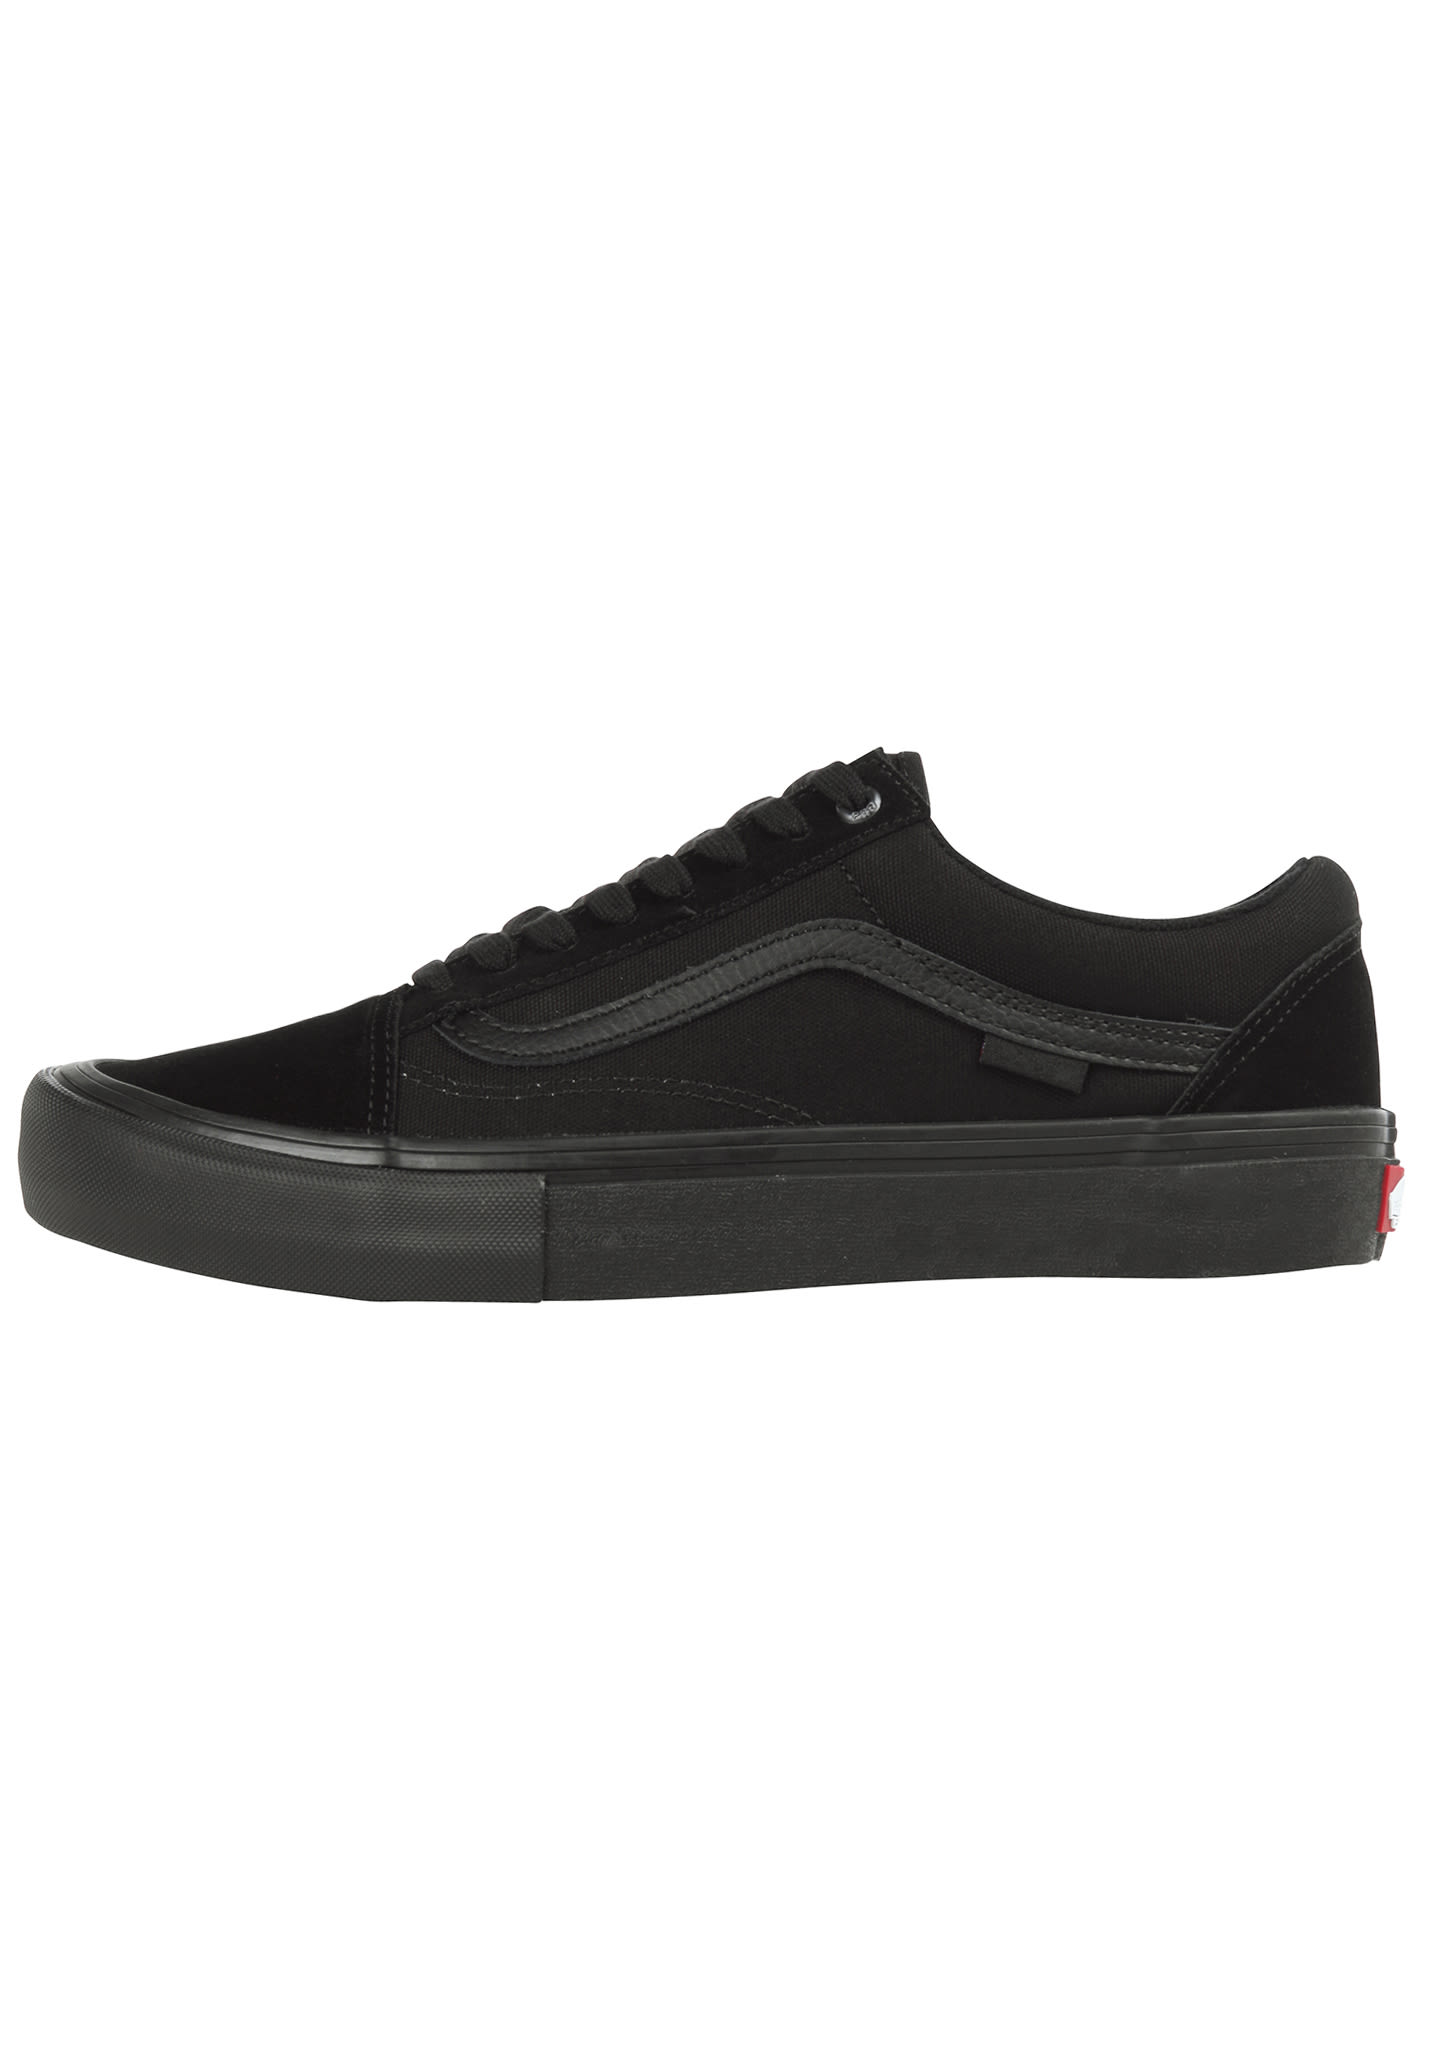 Vans Old Skool Pro Sneaker Für Herren Schwarz Planet Sports